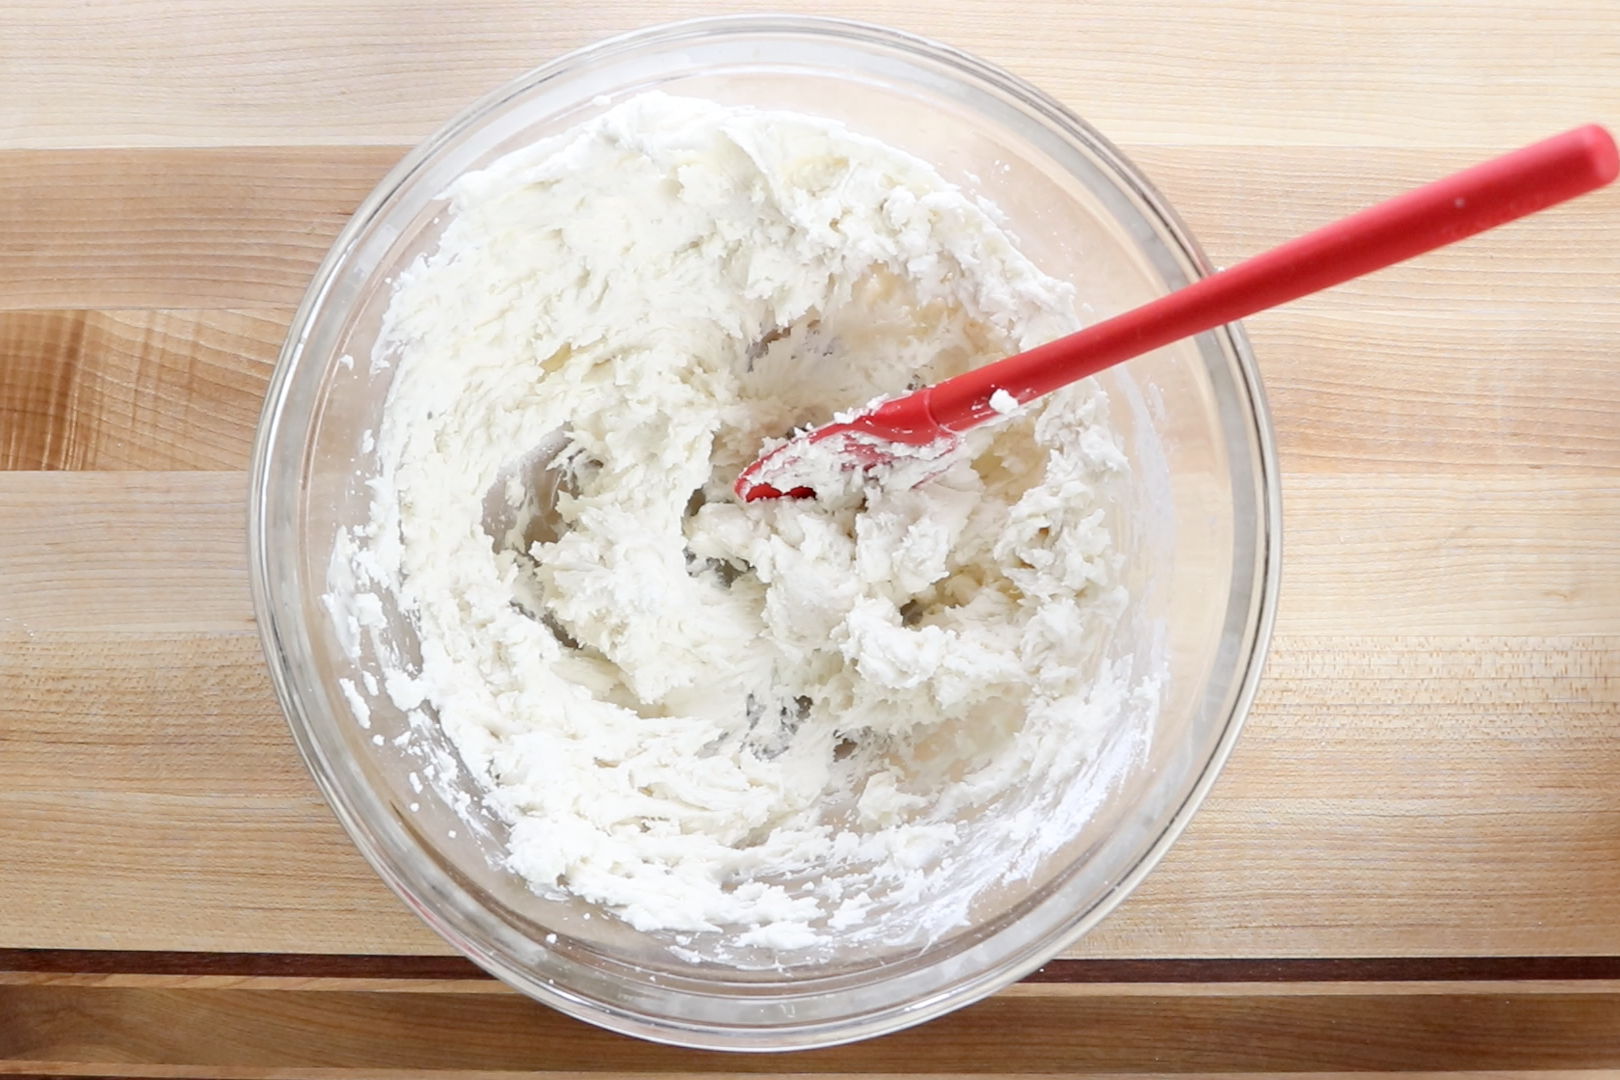 3. Add the rest of the powdered sugar and water, beating until smooth. The mixture will be stiff, but should be flexible enough to sandwich between your cookies. -